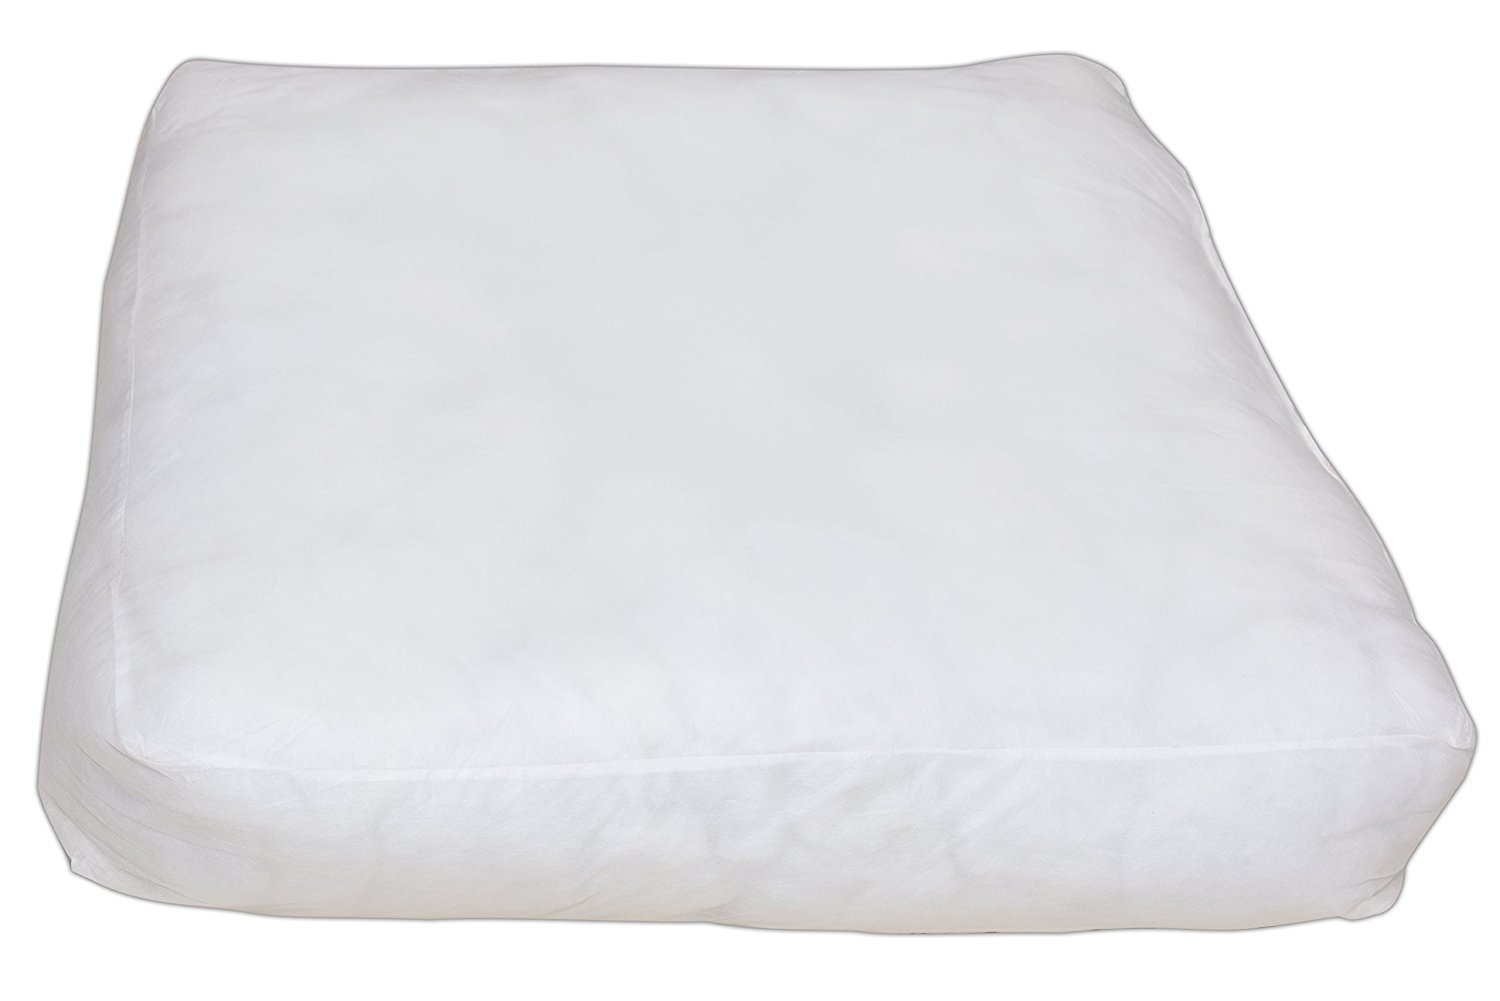 Soft Comfortable Microfiber Pillow /Cushion Pillow Insert Sham Square Form Polyester Soft Bed Pillow Insert Form Cushion filler Work Great 4 Back,Stomach Side & Pregnant Sleepers (35 x 35 x 6 inch